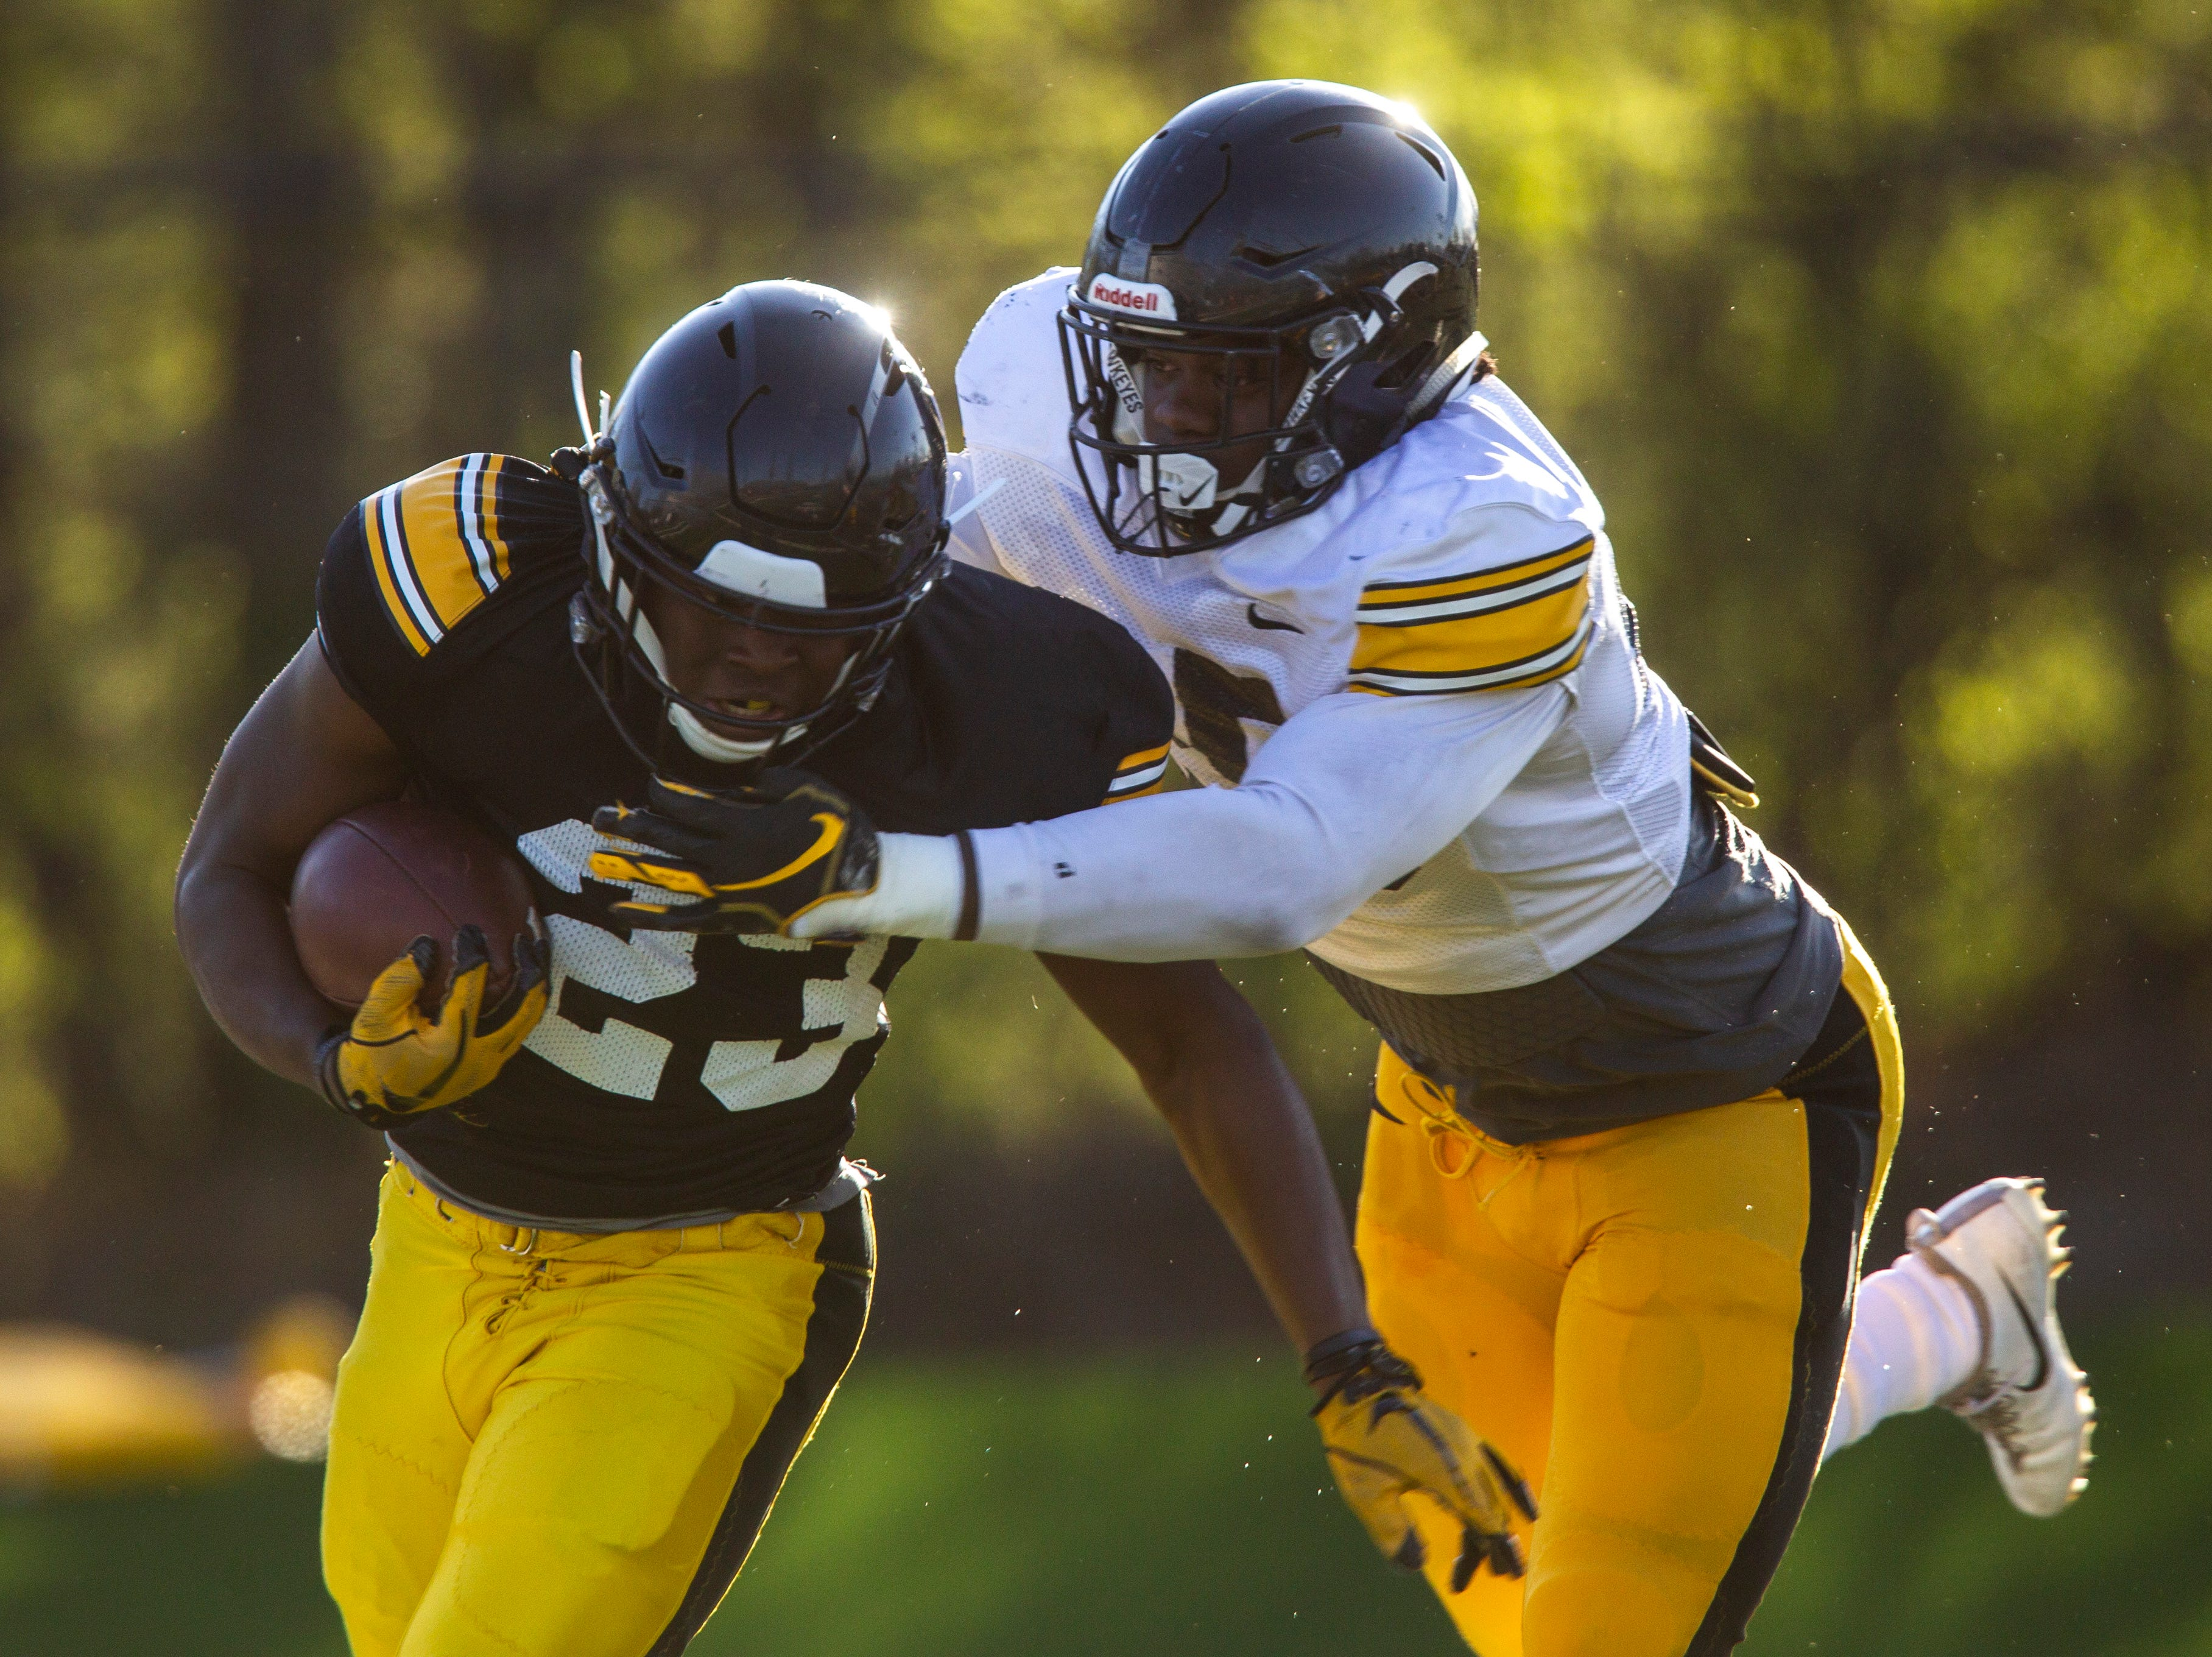 Iowa running back Shadrick Byrd (23) gets tackled by linebacker Jayden McDonald (25) during the final spring football practice, Friday, April 26, 2019, at the University of Iowa outdoor practice facility in Iowa City, Iowa.